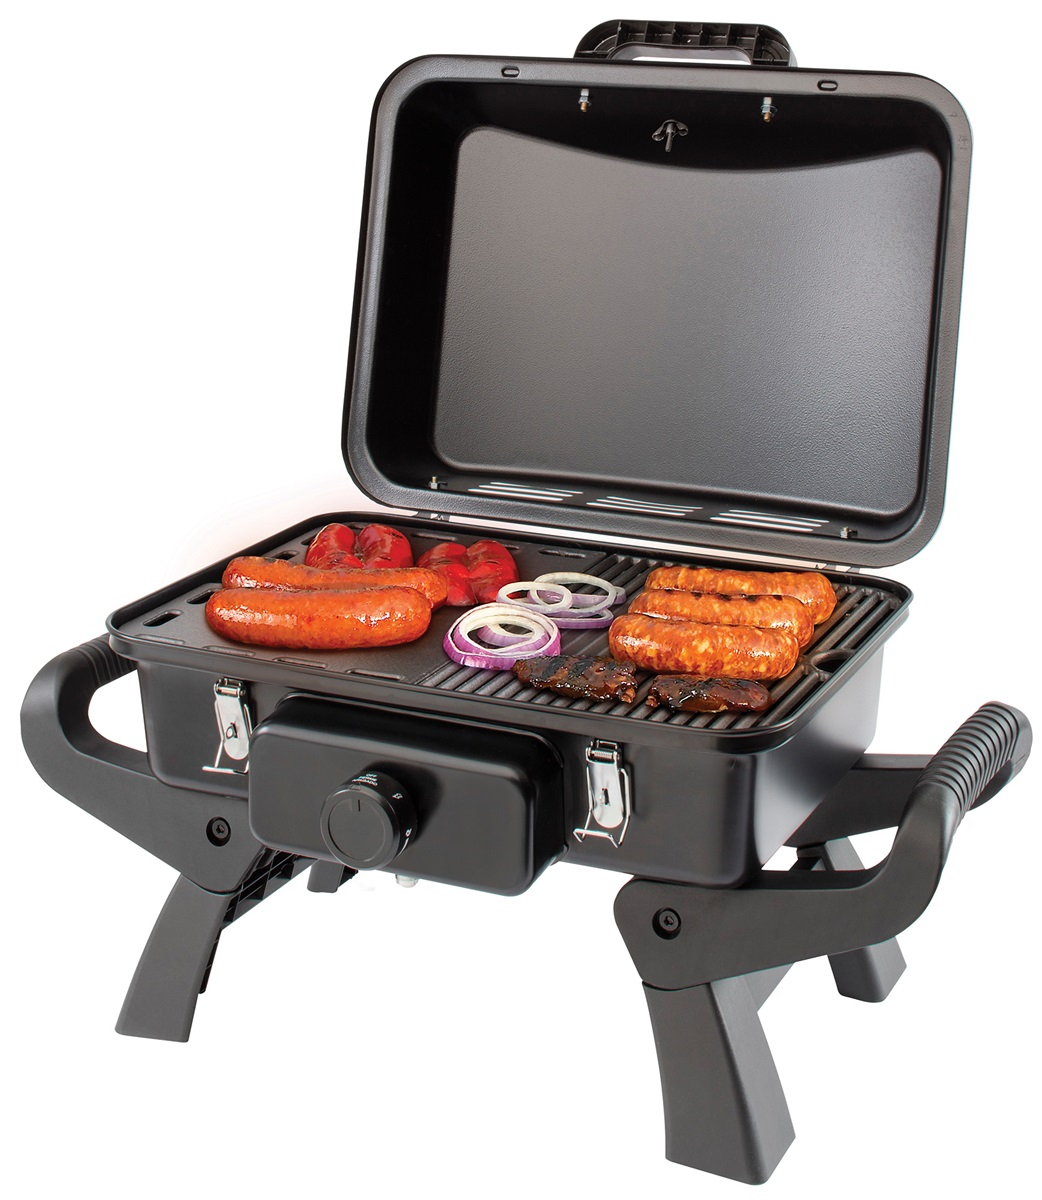 Gasmate Voyager Portable Gas Bbq Review gasmate adventurer deluxe 1 single burner portable bbq